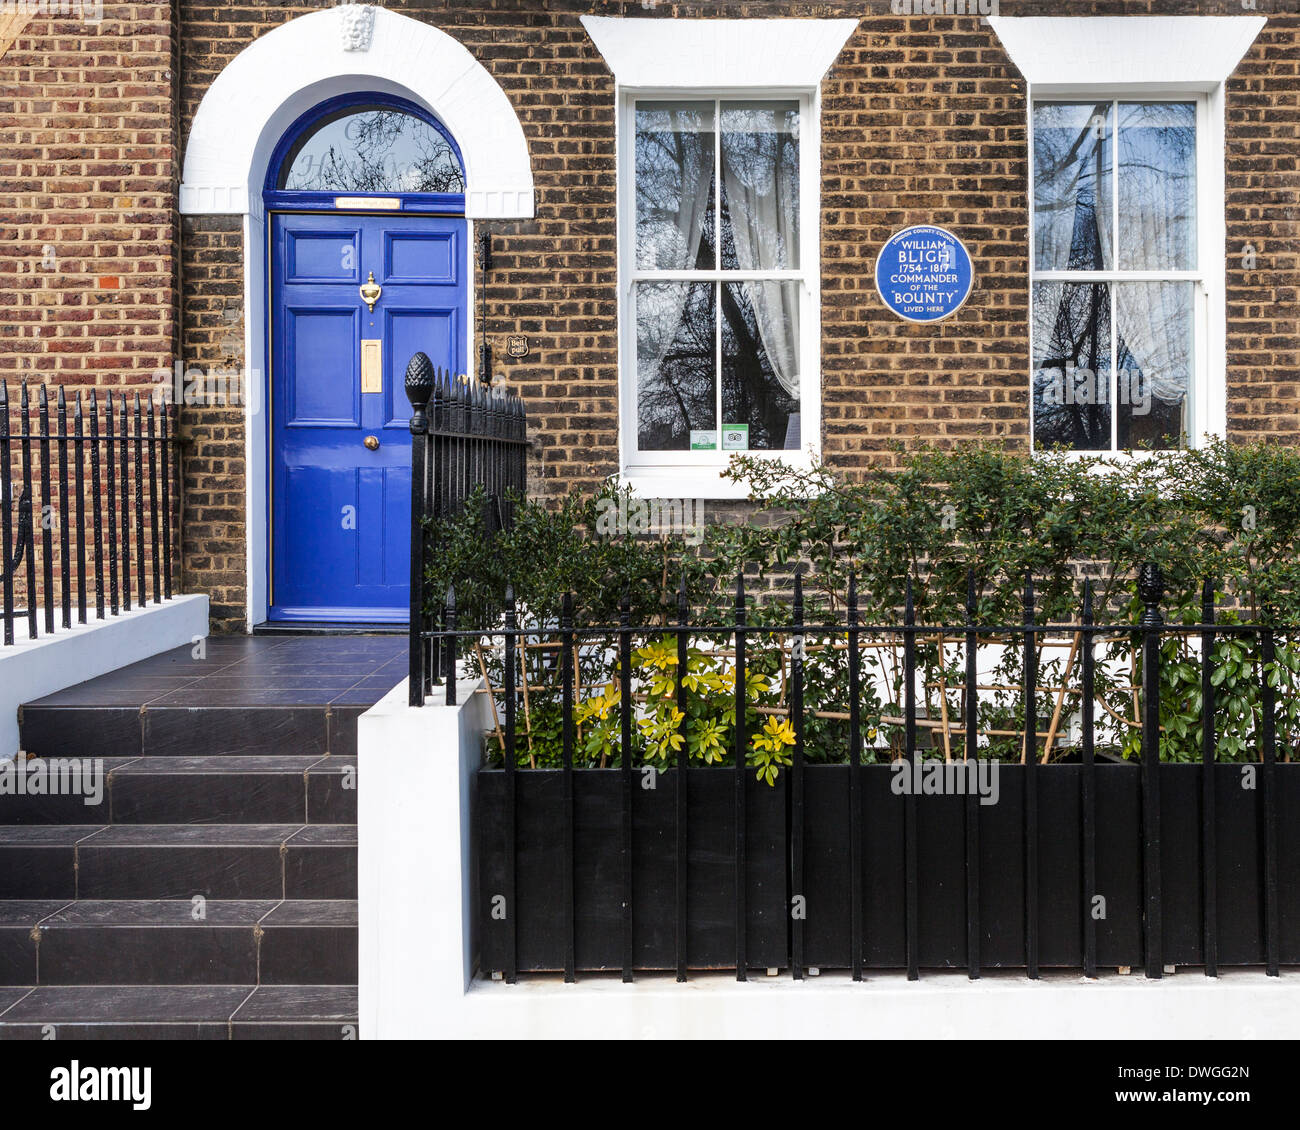 blue door house. William Bligh Blue Plaque On Terraced Brick House With Door In Lambeth Road, Southwark, South London, SE1 R